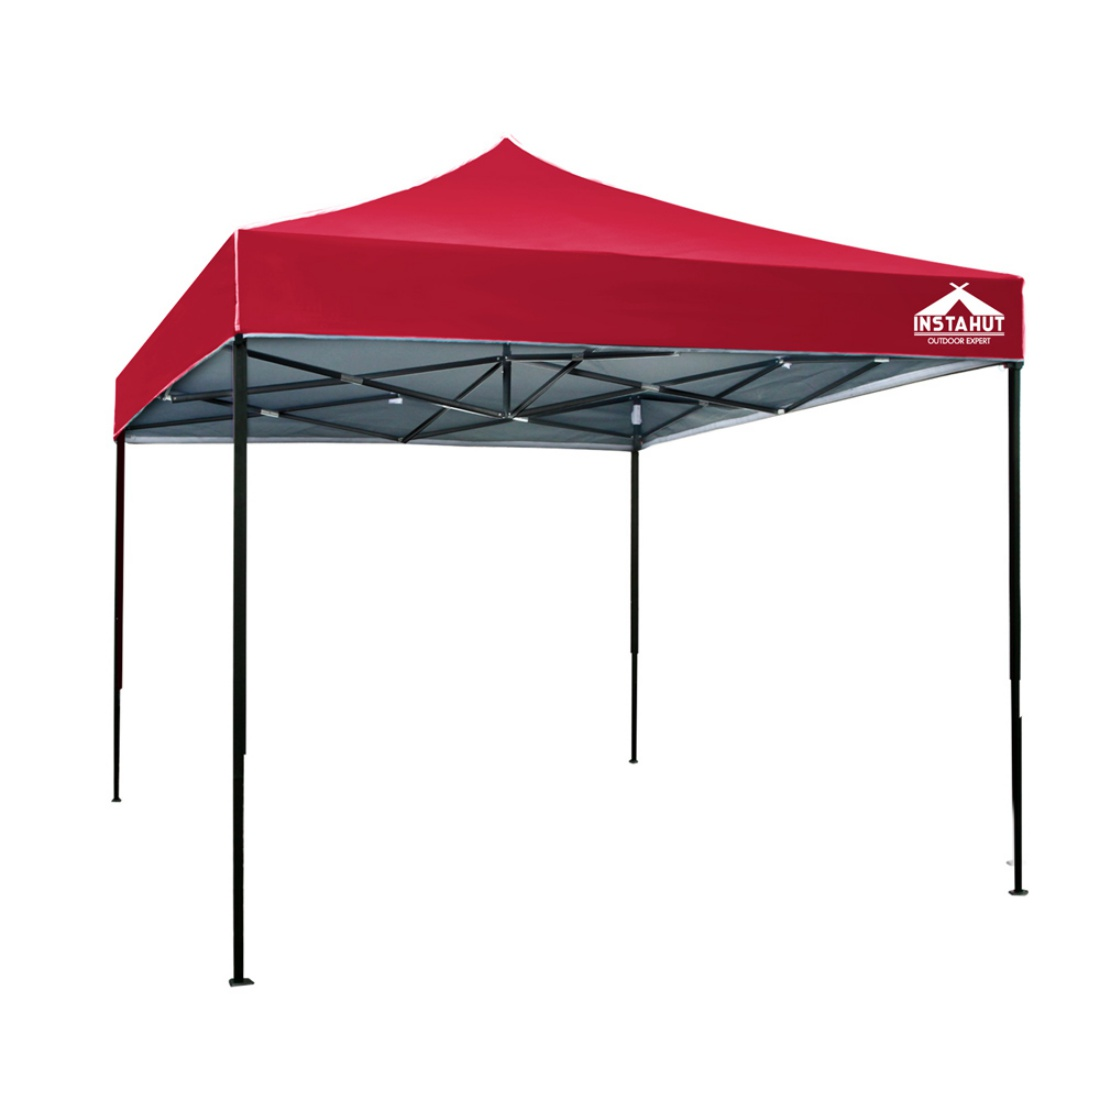 3m x 3m Pop-up Garden Outdoor Gazebo Red